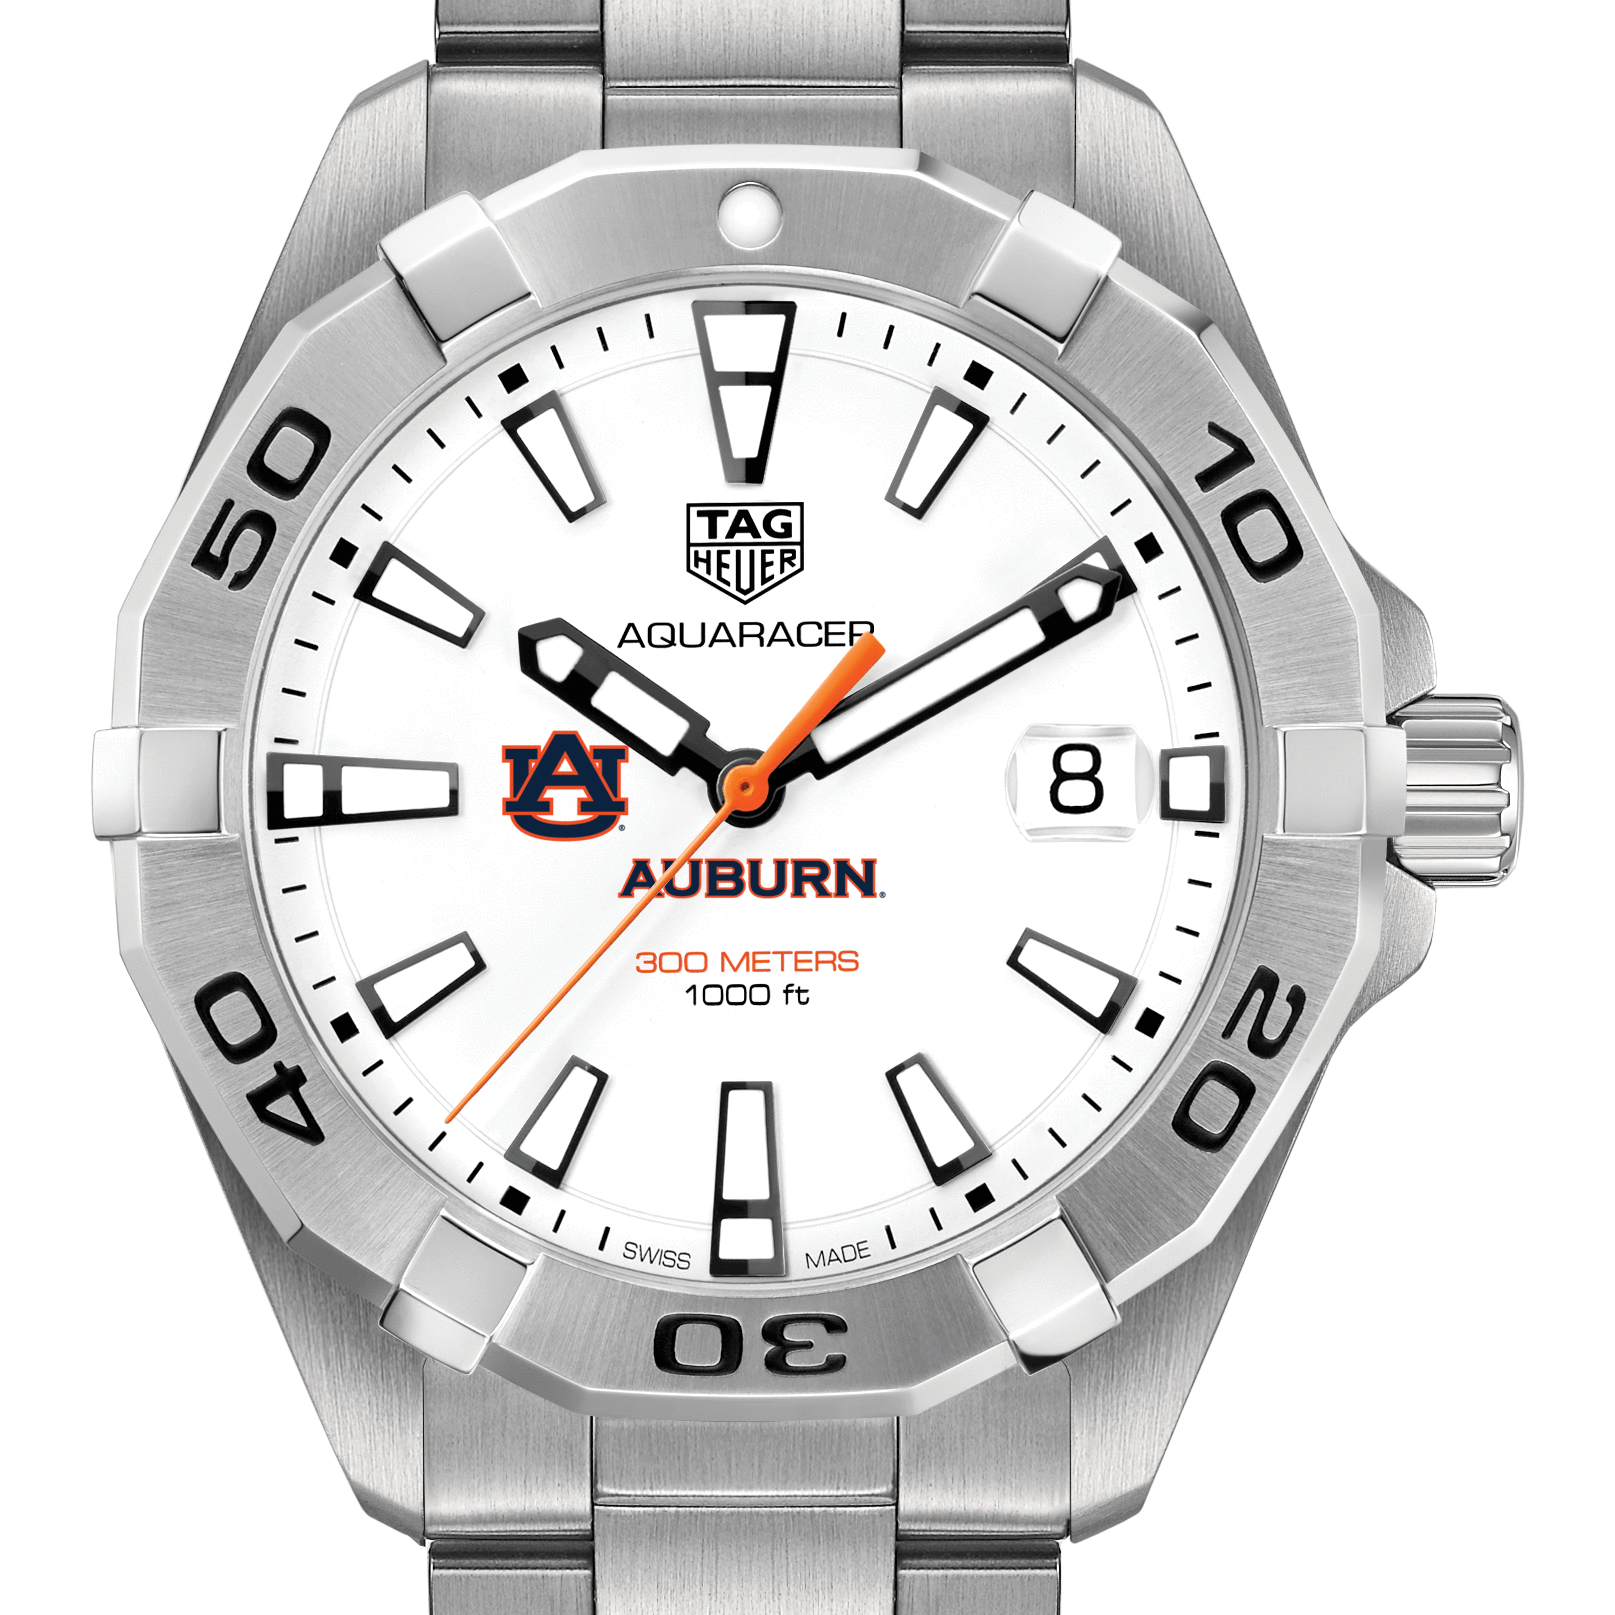 Auburn Men's TAG Heuer Steel Aquaracer